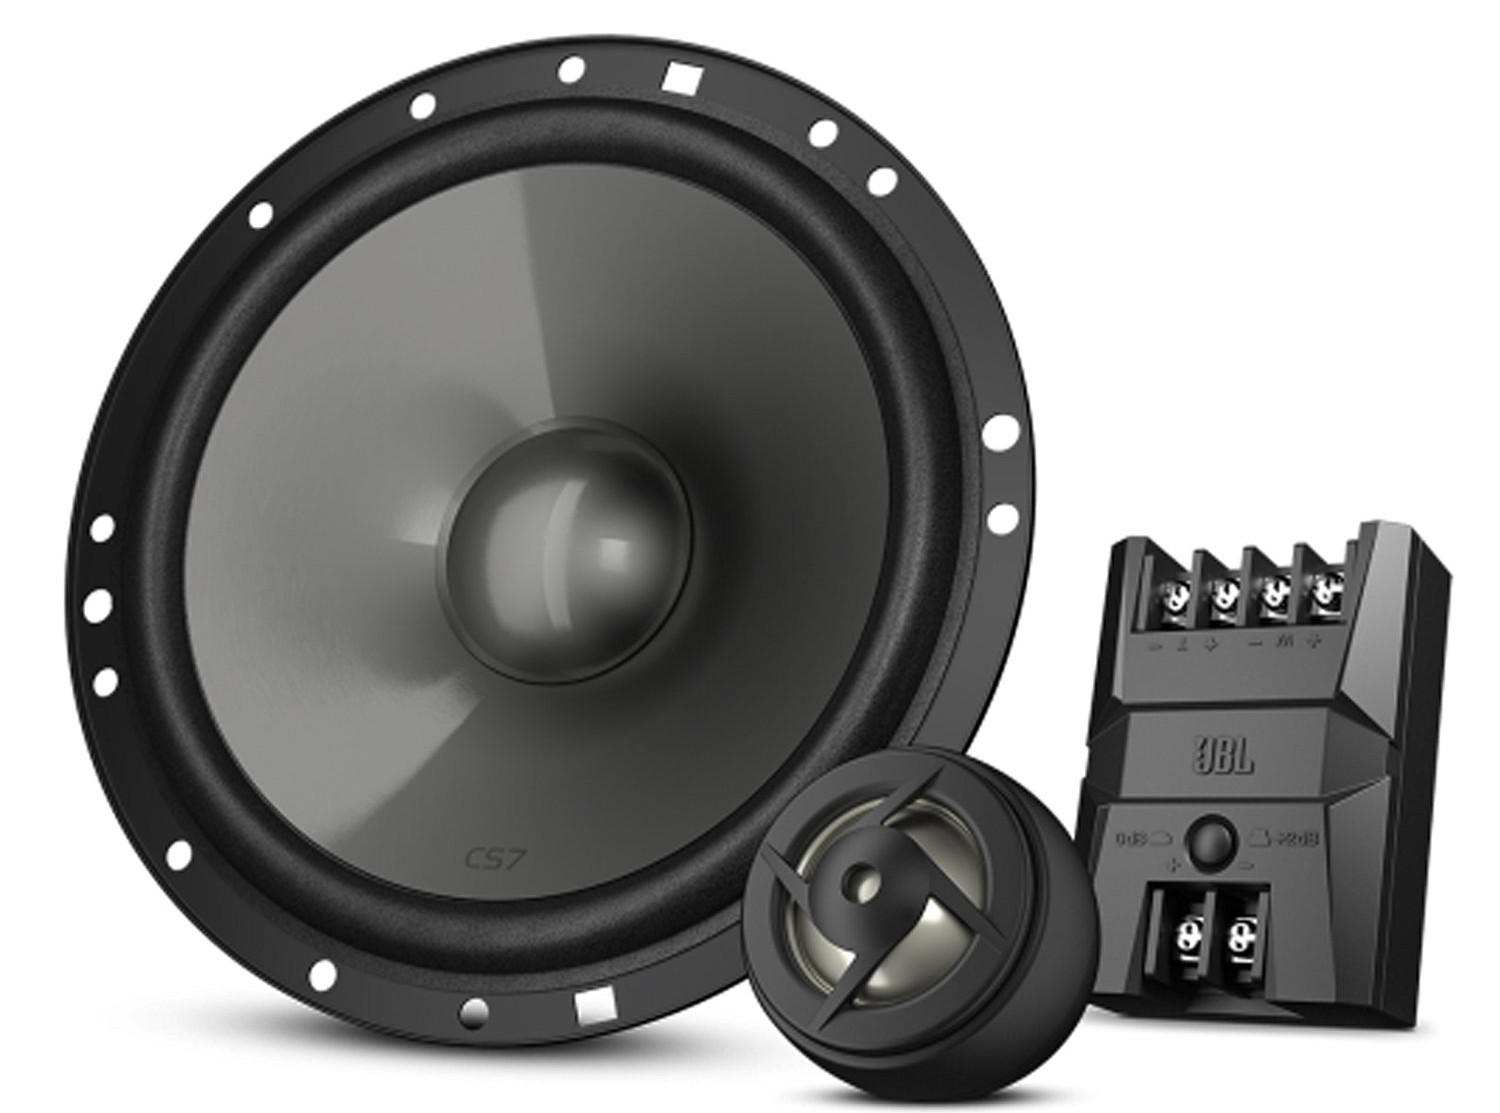 le test des enceintes kit 2 voies s par es jbl car cs760c haut parleur. Black Bedroom Furniture Sets. Home Design Ideas